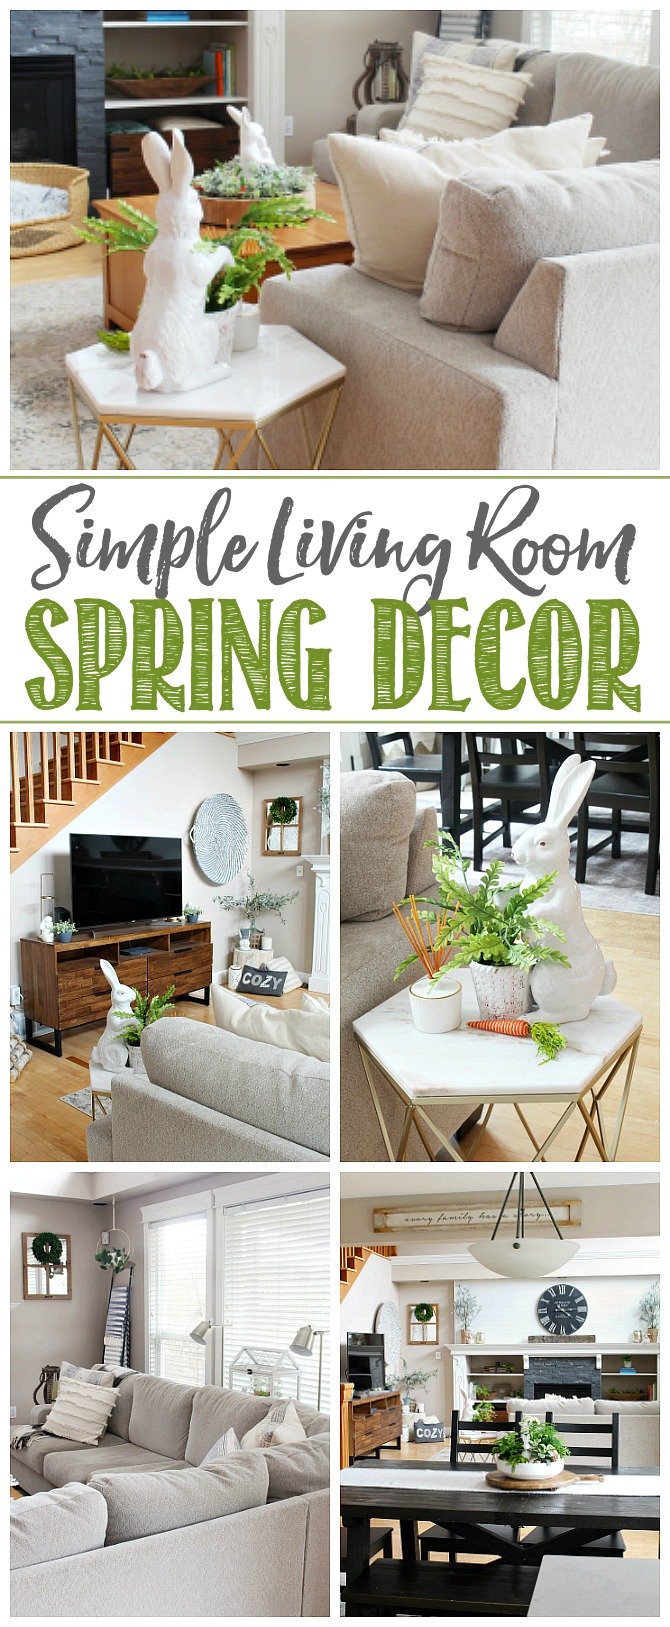 Simple Living Room Spring Decor. Collage of easy spring decor ideas for a transitional style living room.